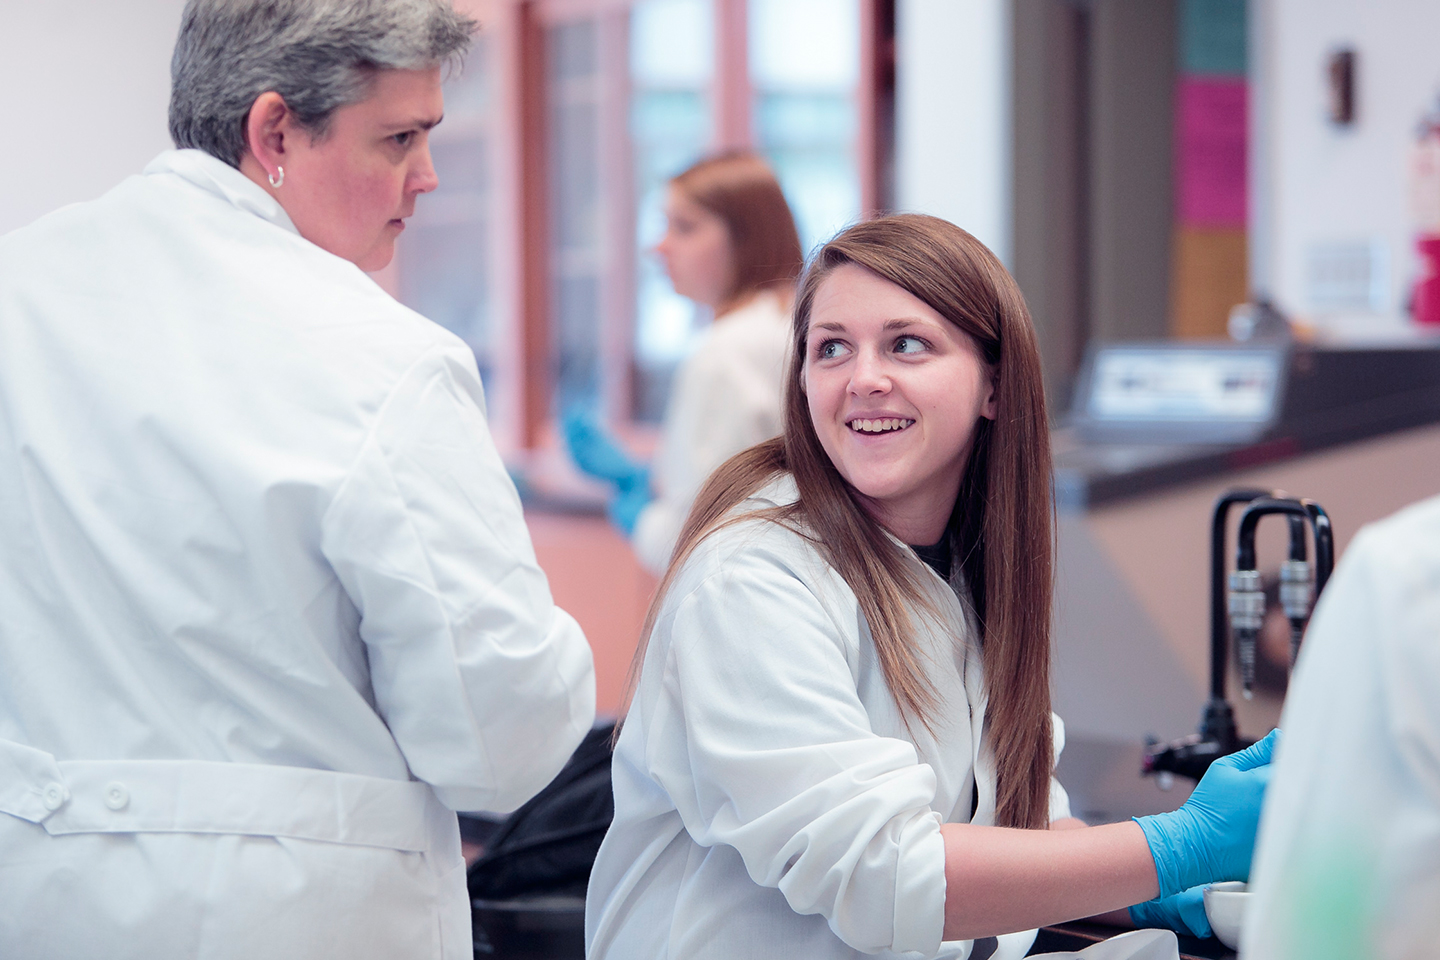 Why is laboratory important in biology in conjunction with biology courses?